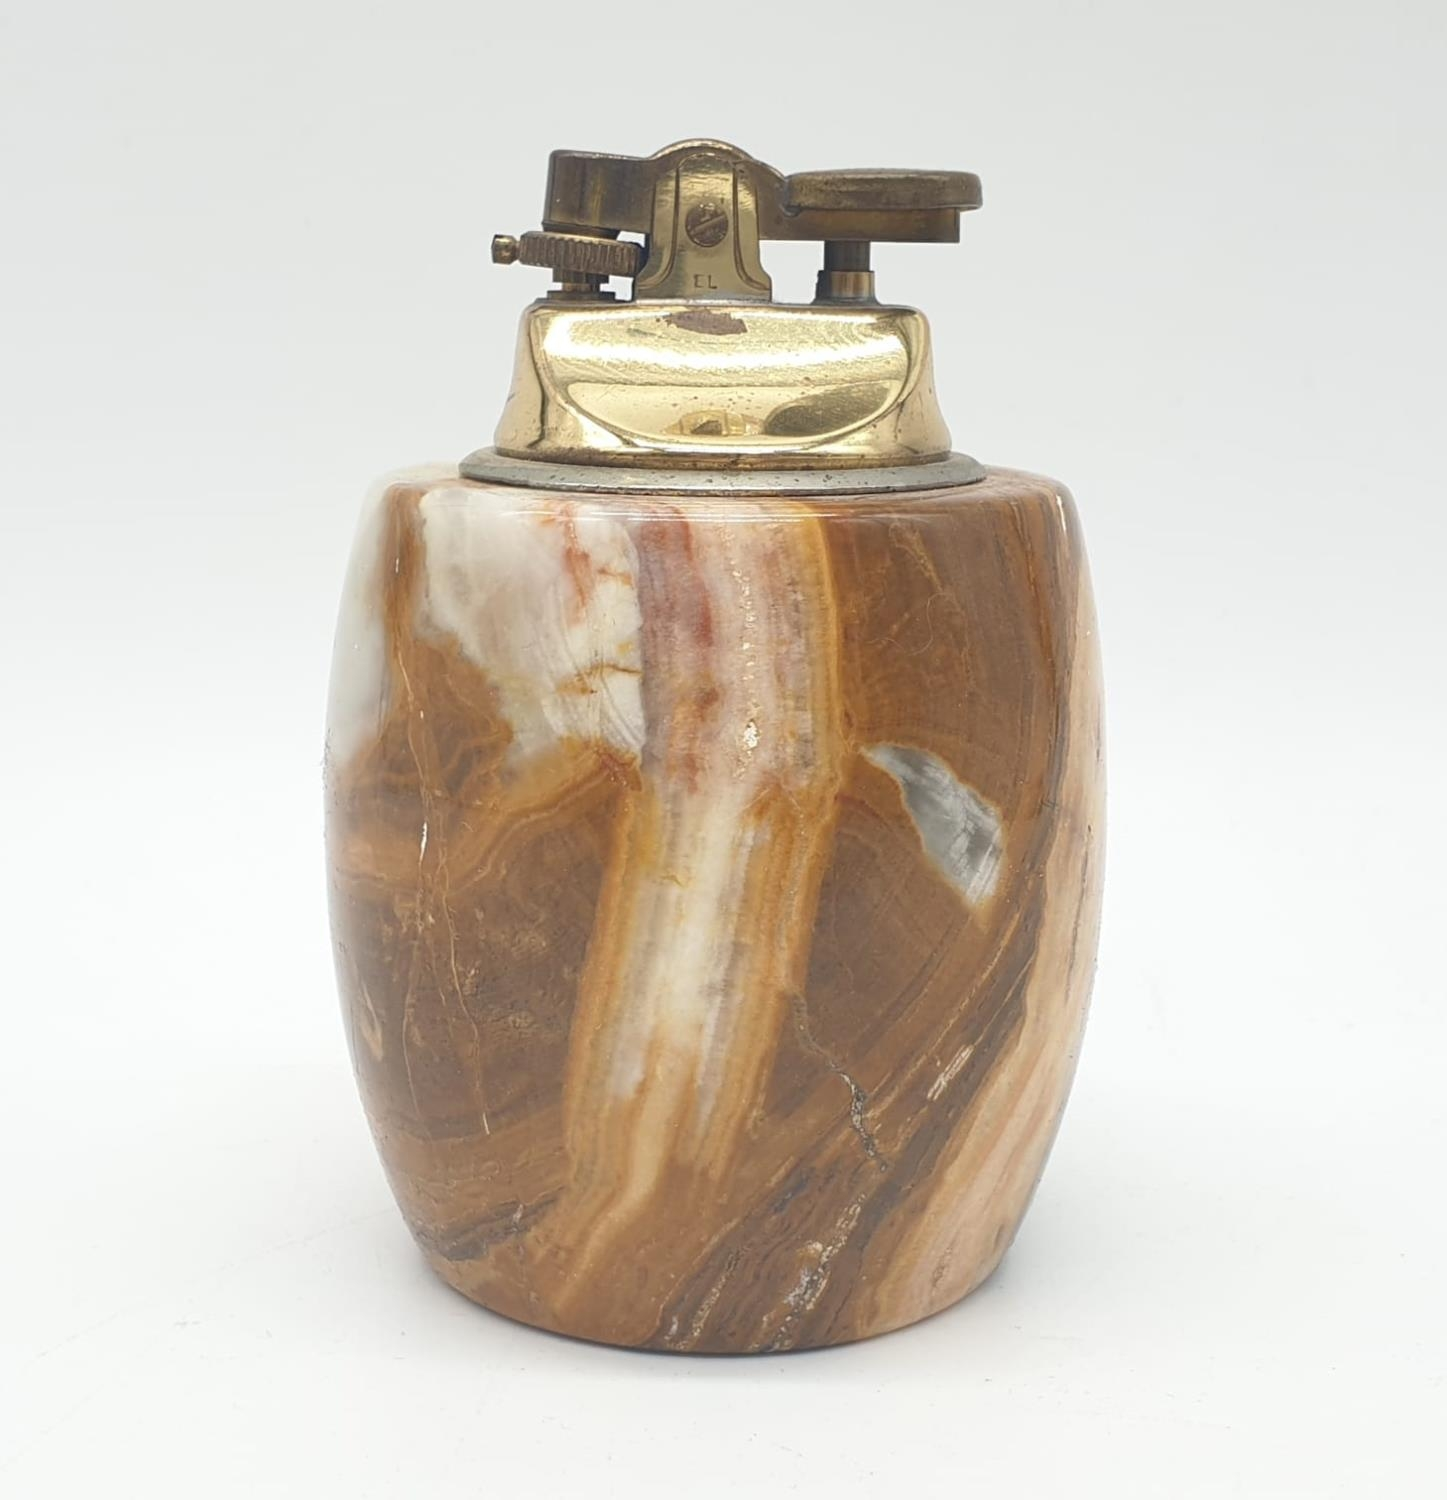 An onyx cigarette box, lighter and 2 onyx ash trays (small chip on cigarette box lid). - Image 6 of 16